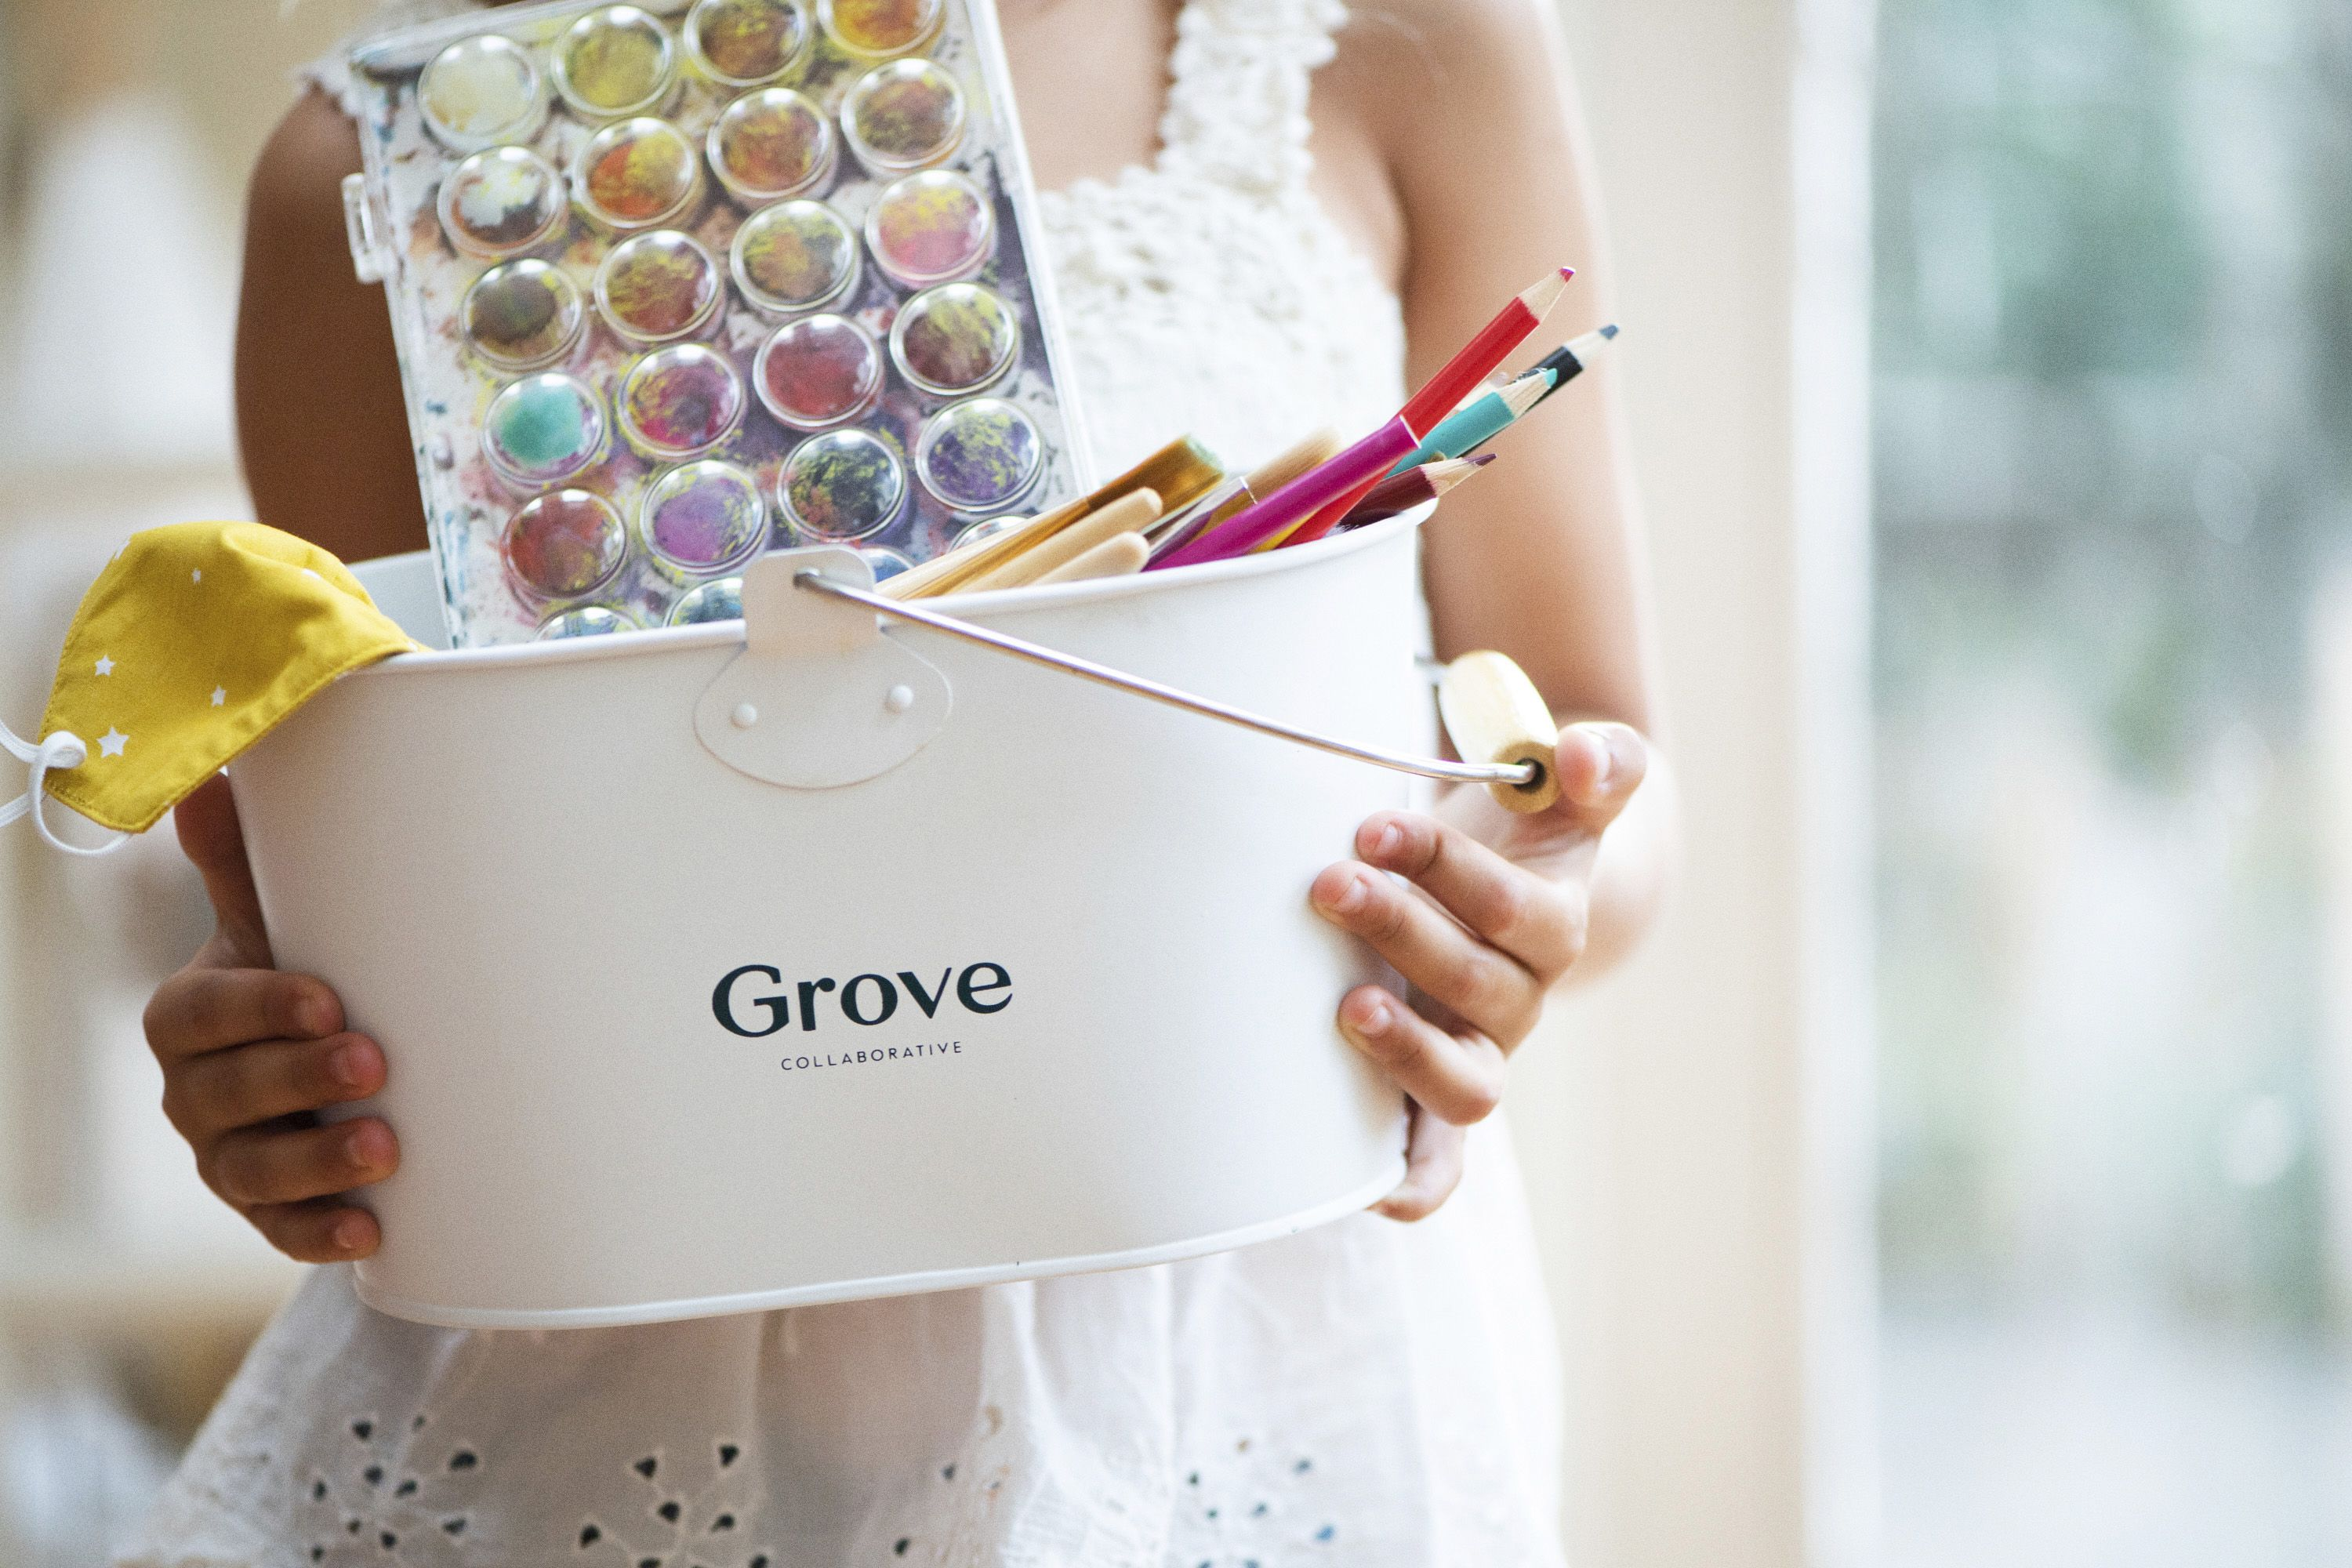 person holding Grove caddy with ink and coloring supplies